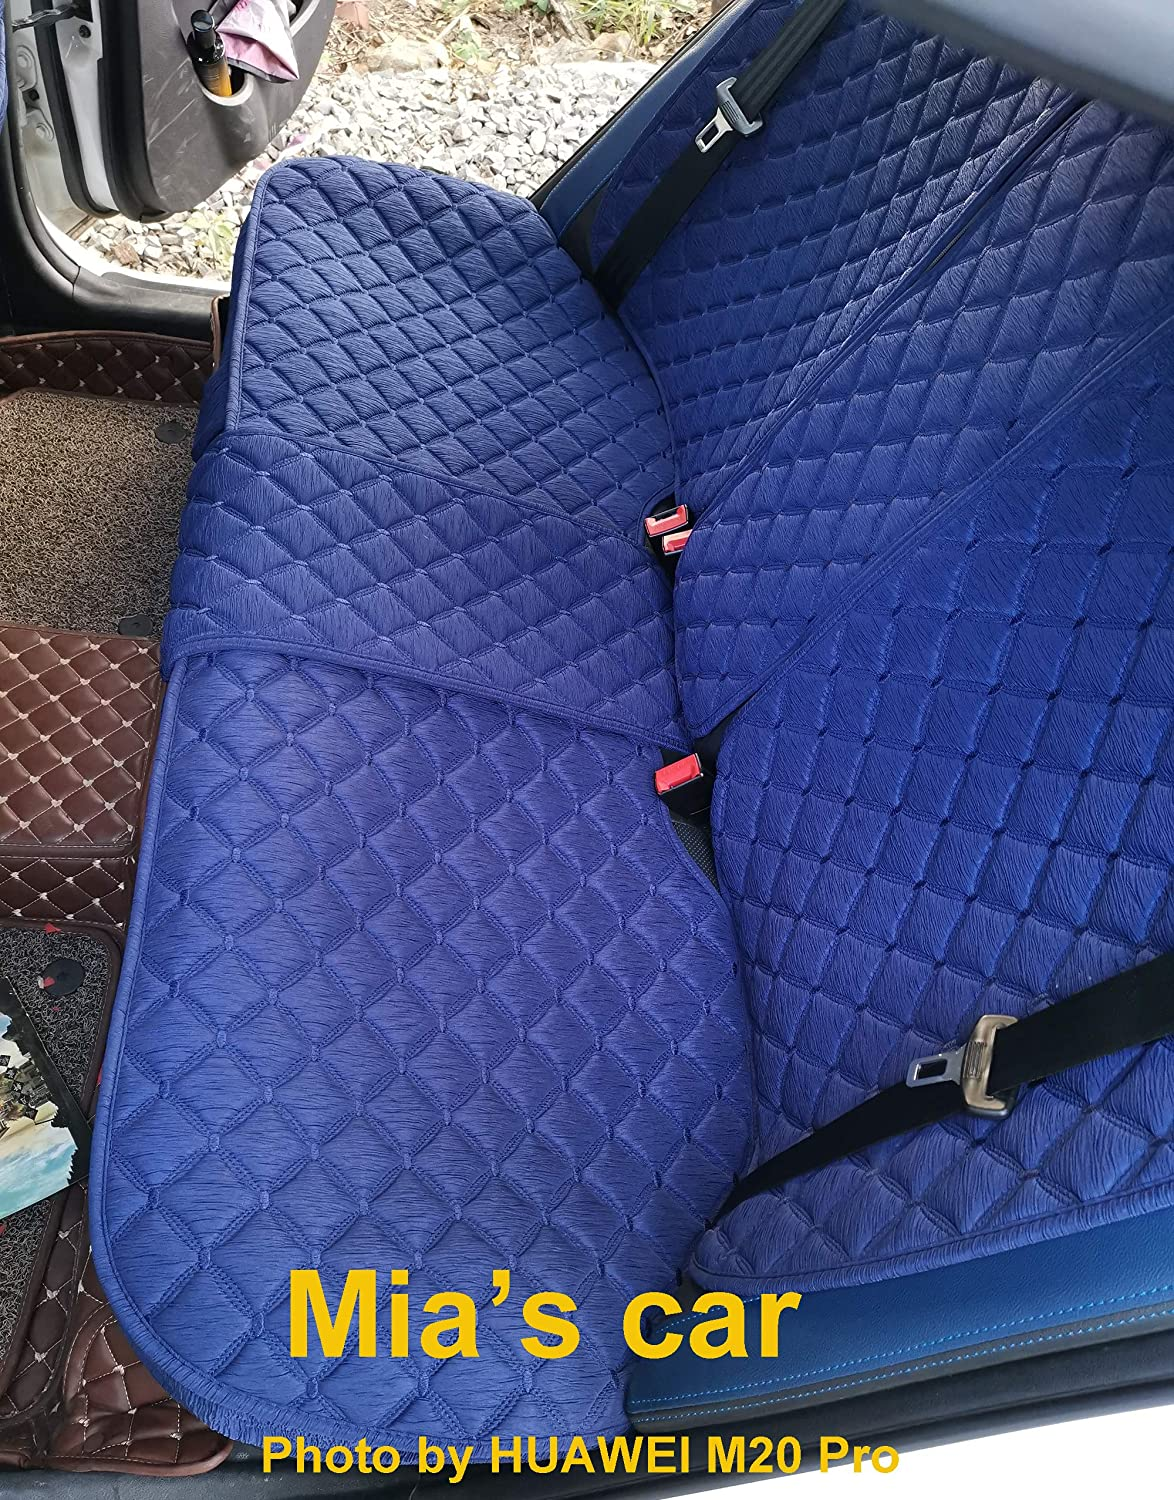 INCH EMPIRE Anti Slip Car Seat Cover Full Set Breathable Sweat Proof Fabric Polyester Cloth Universal Fit Front and Back Cushion-Adjustable Bench Purple with Stich Grid